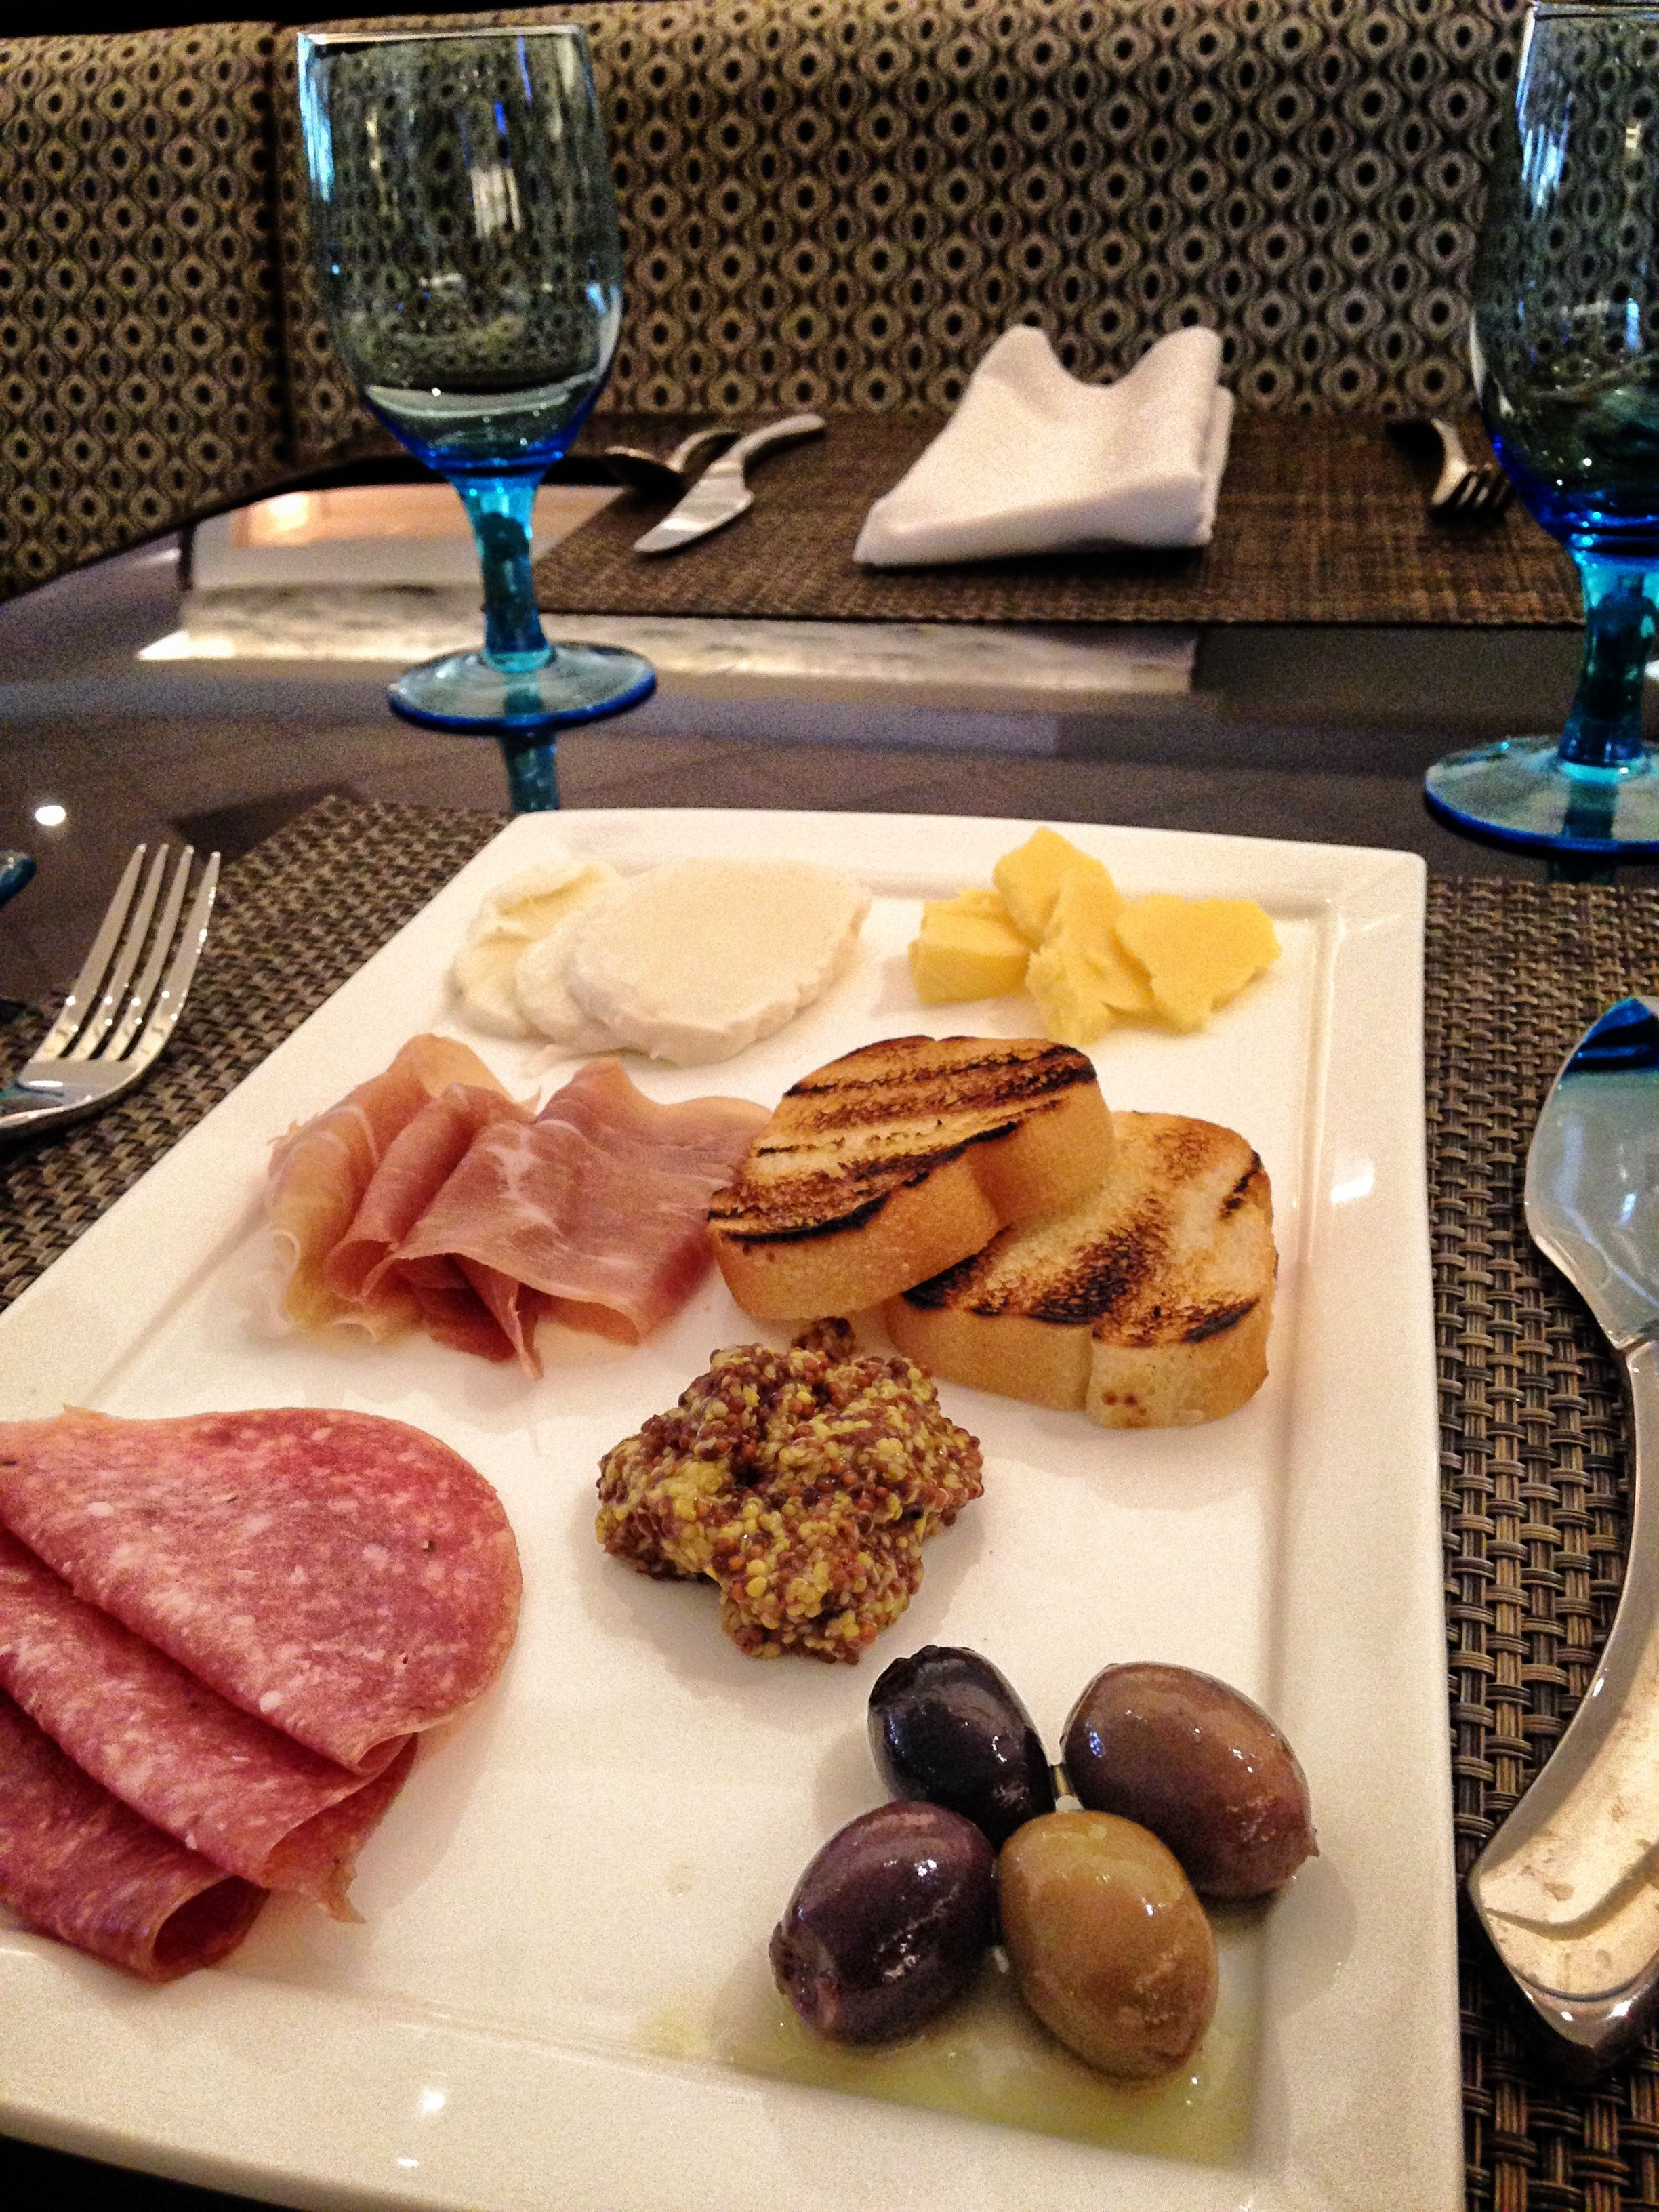 Cheese And Charcuterie Platter From Floe Lounge In The Irvine